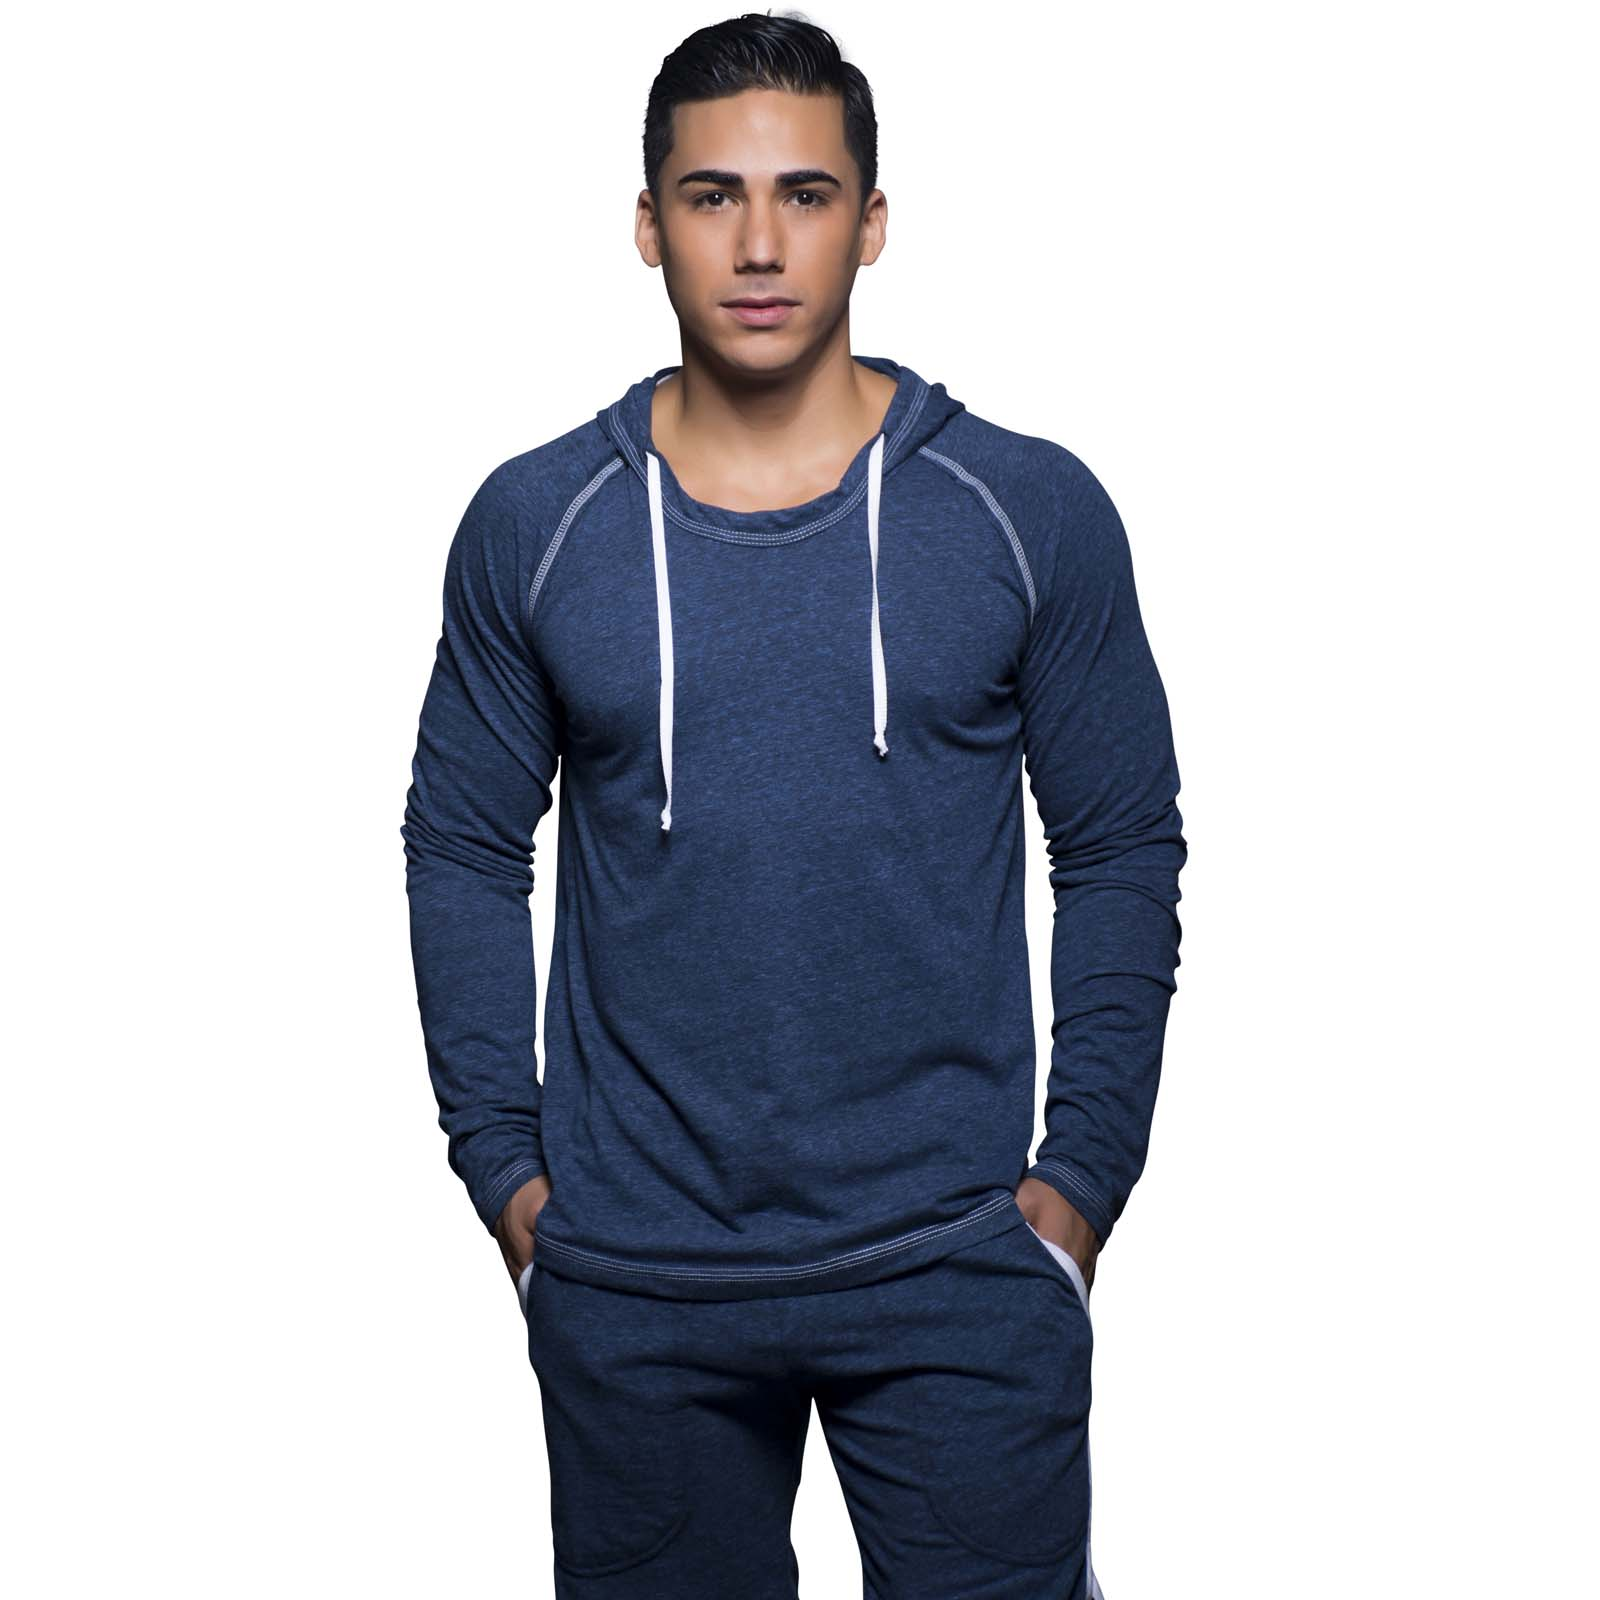 Sweat Andrew Christian Vibe Aspire 10137